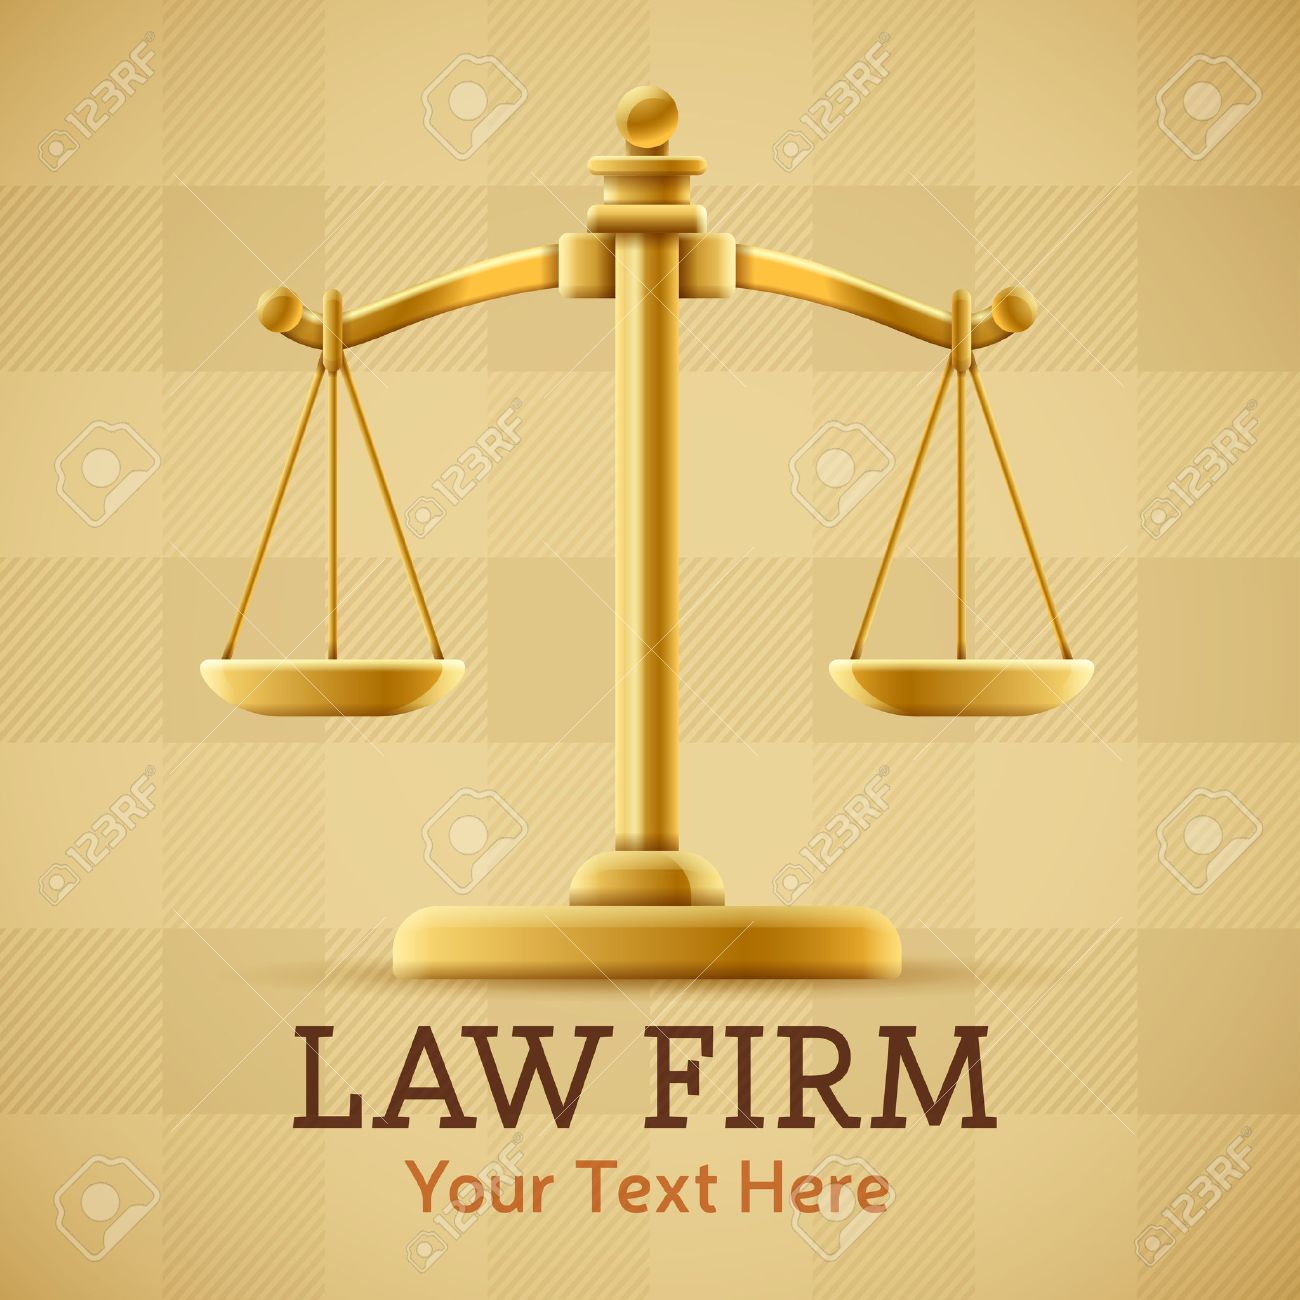 Law firm justice scale background concept with space for text - 24908070